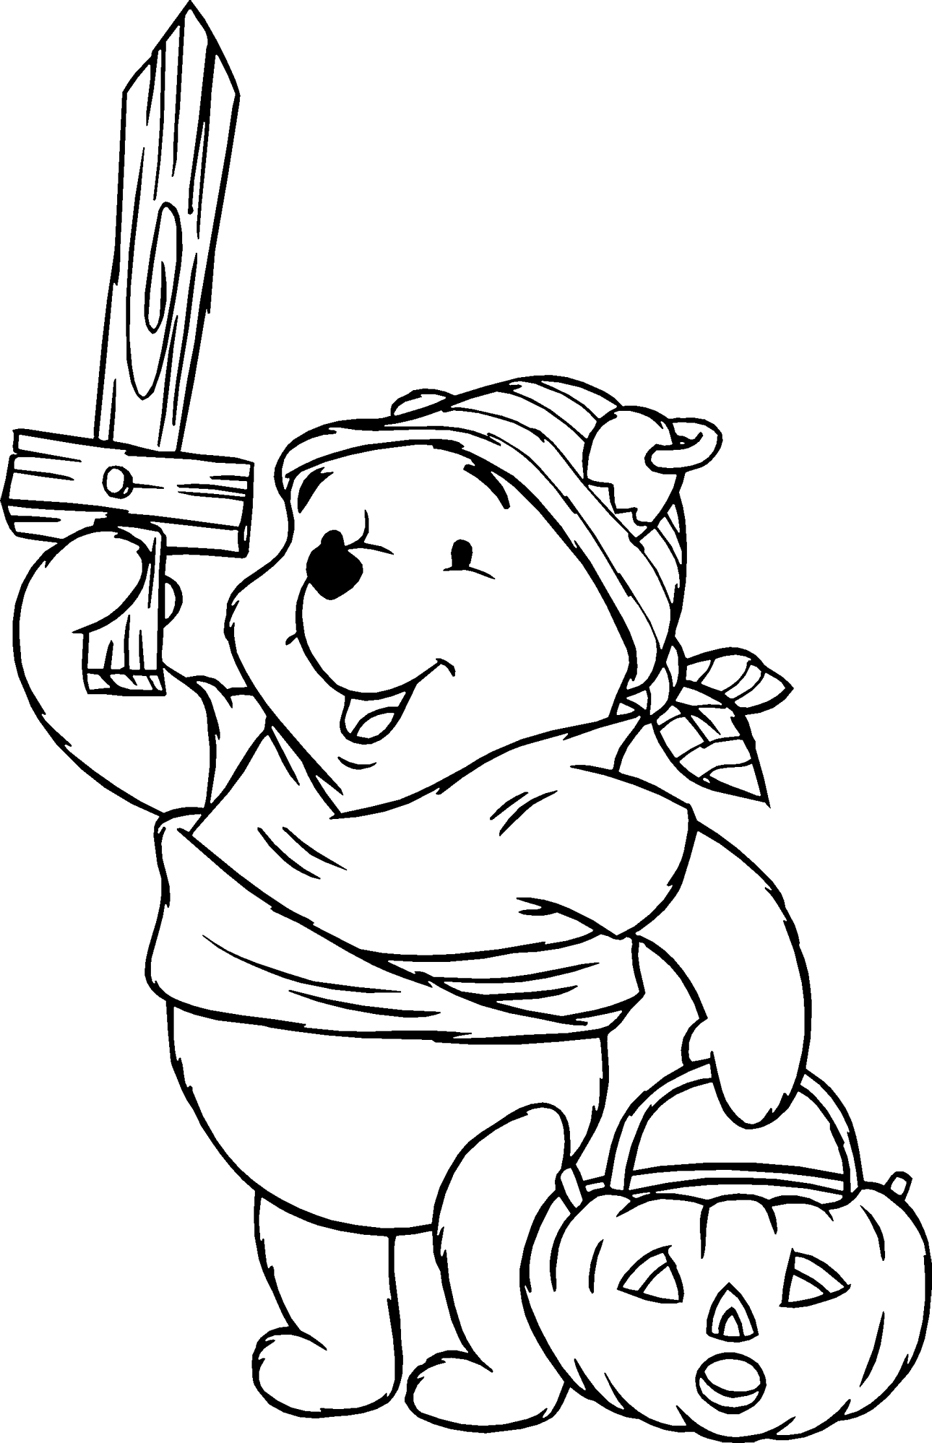 932x1443 Halloween Pooh Pirate Costume Coloring Pages For Kids Free